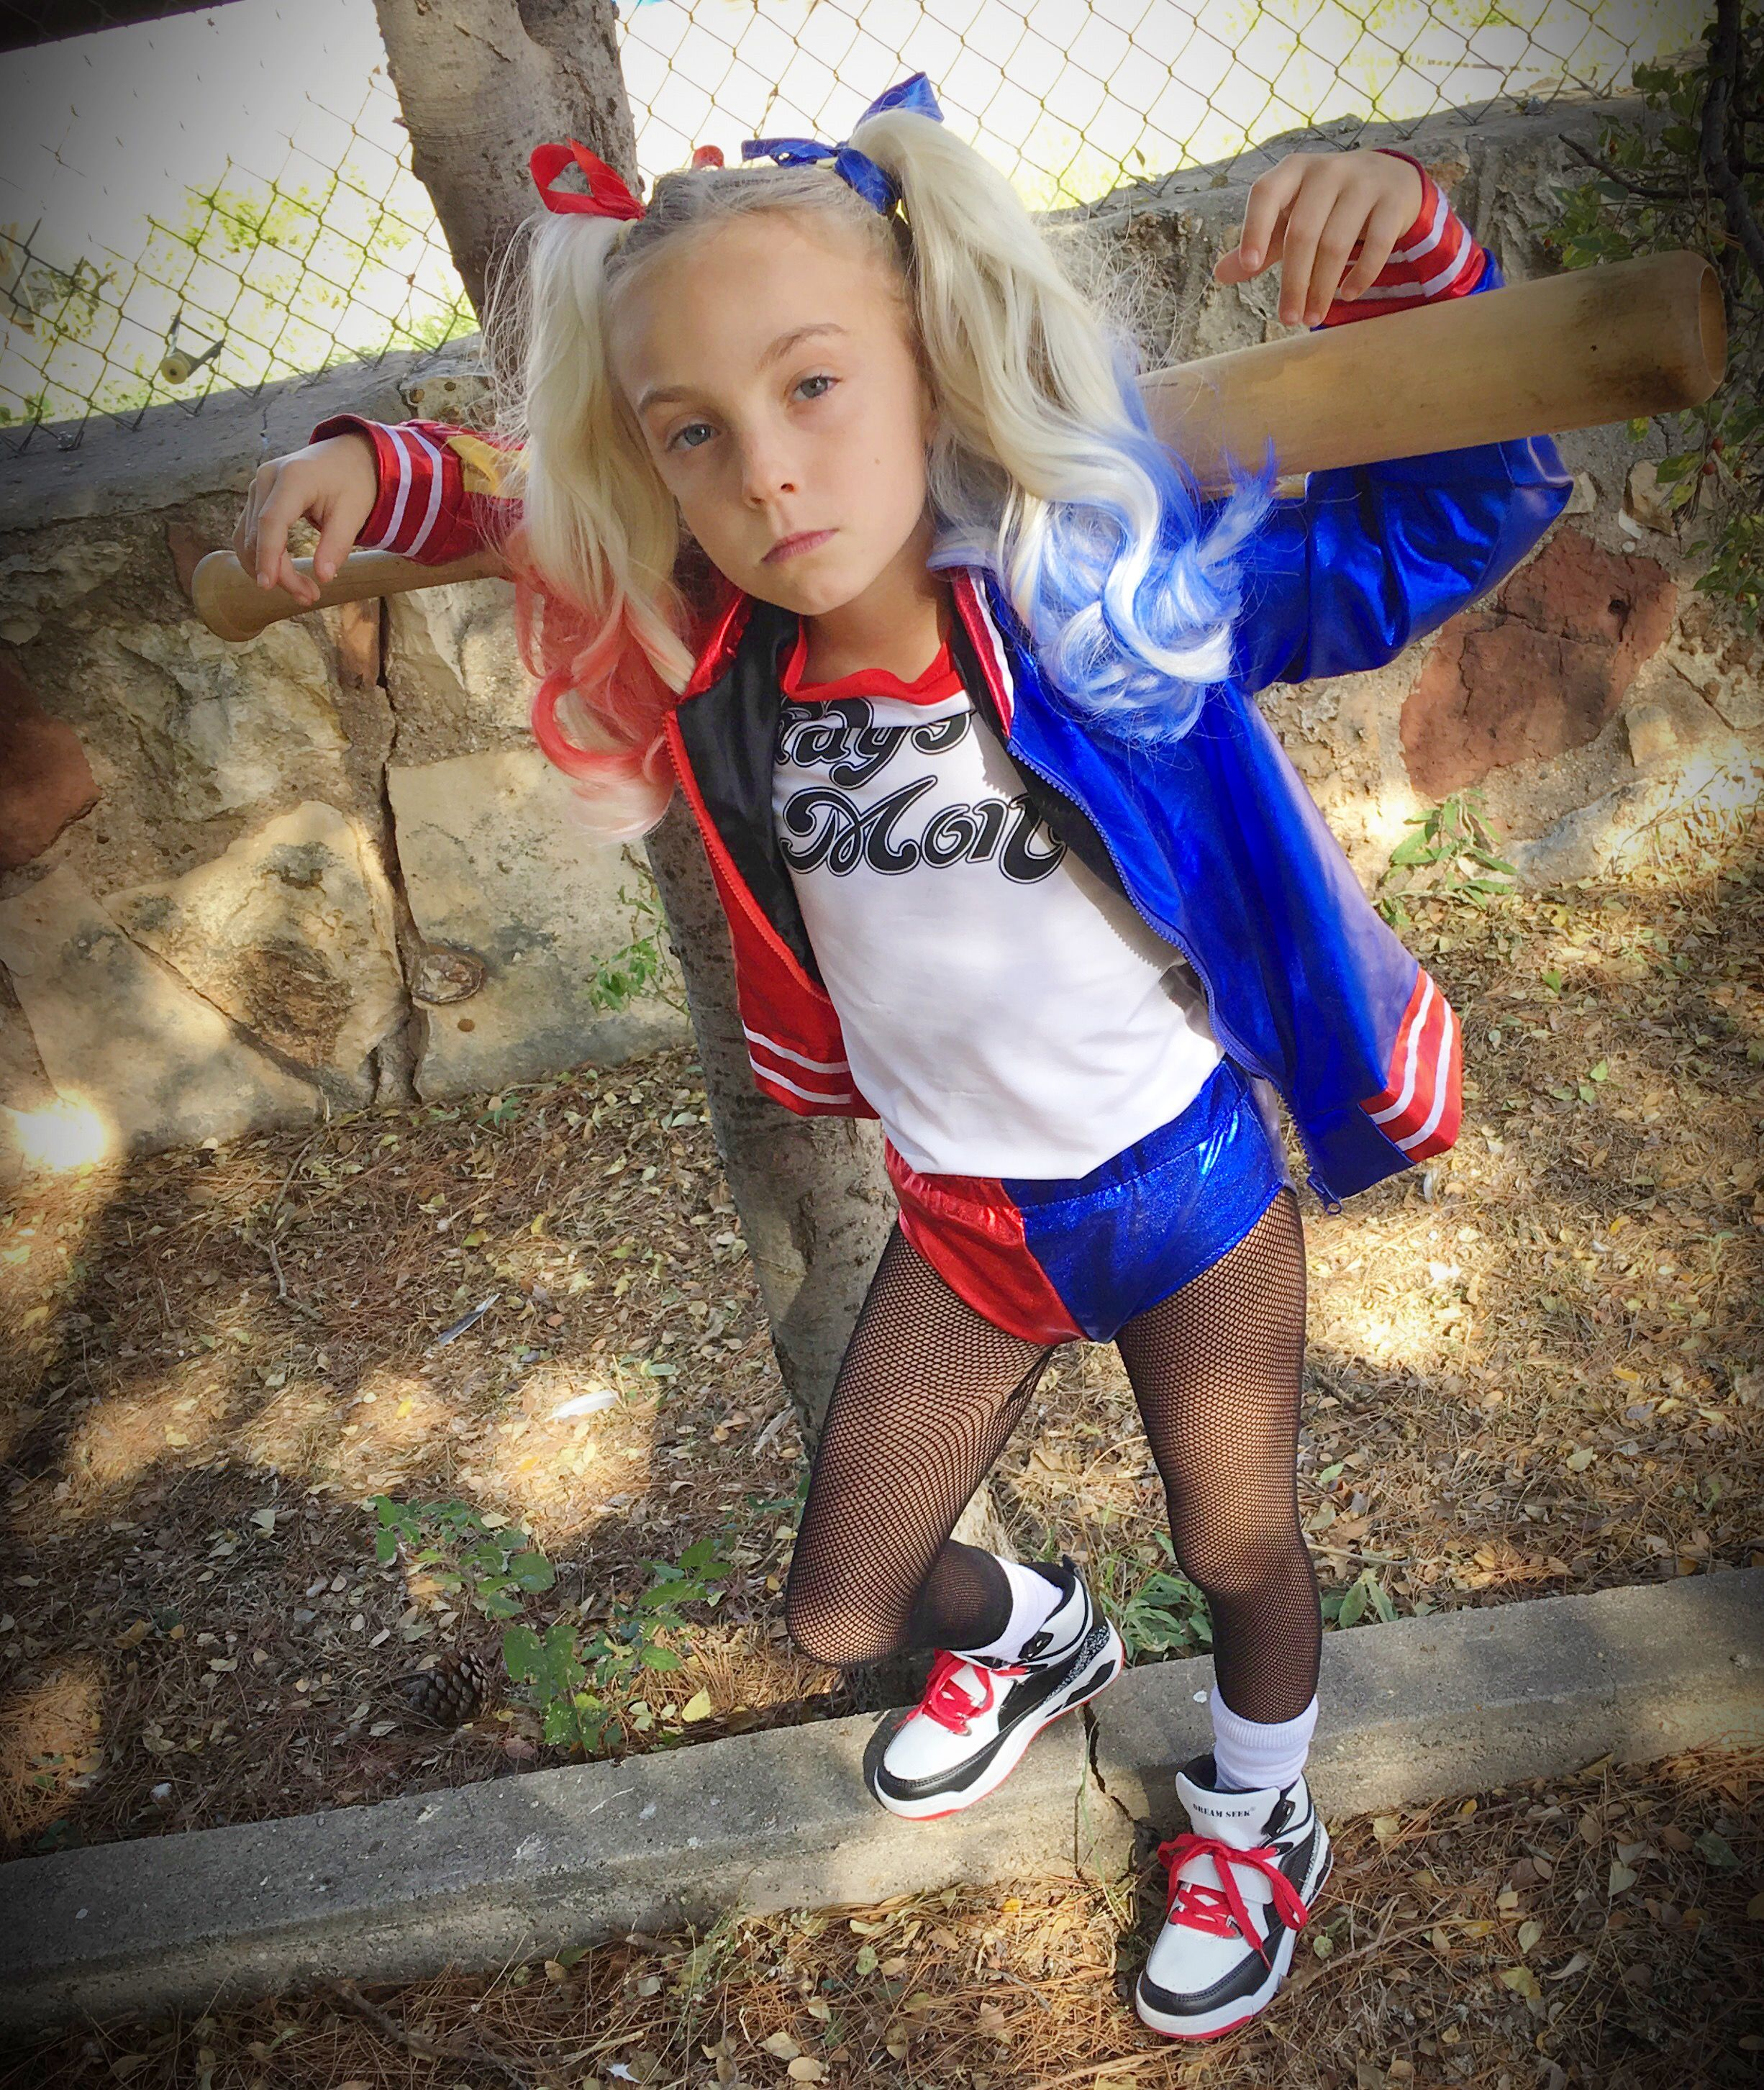 Harley Quinn Suicide Squad childs costume | Harley Quinn ...